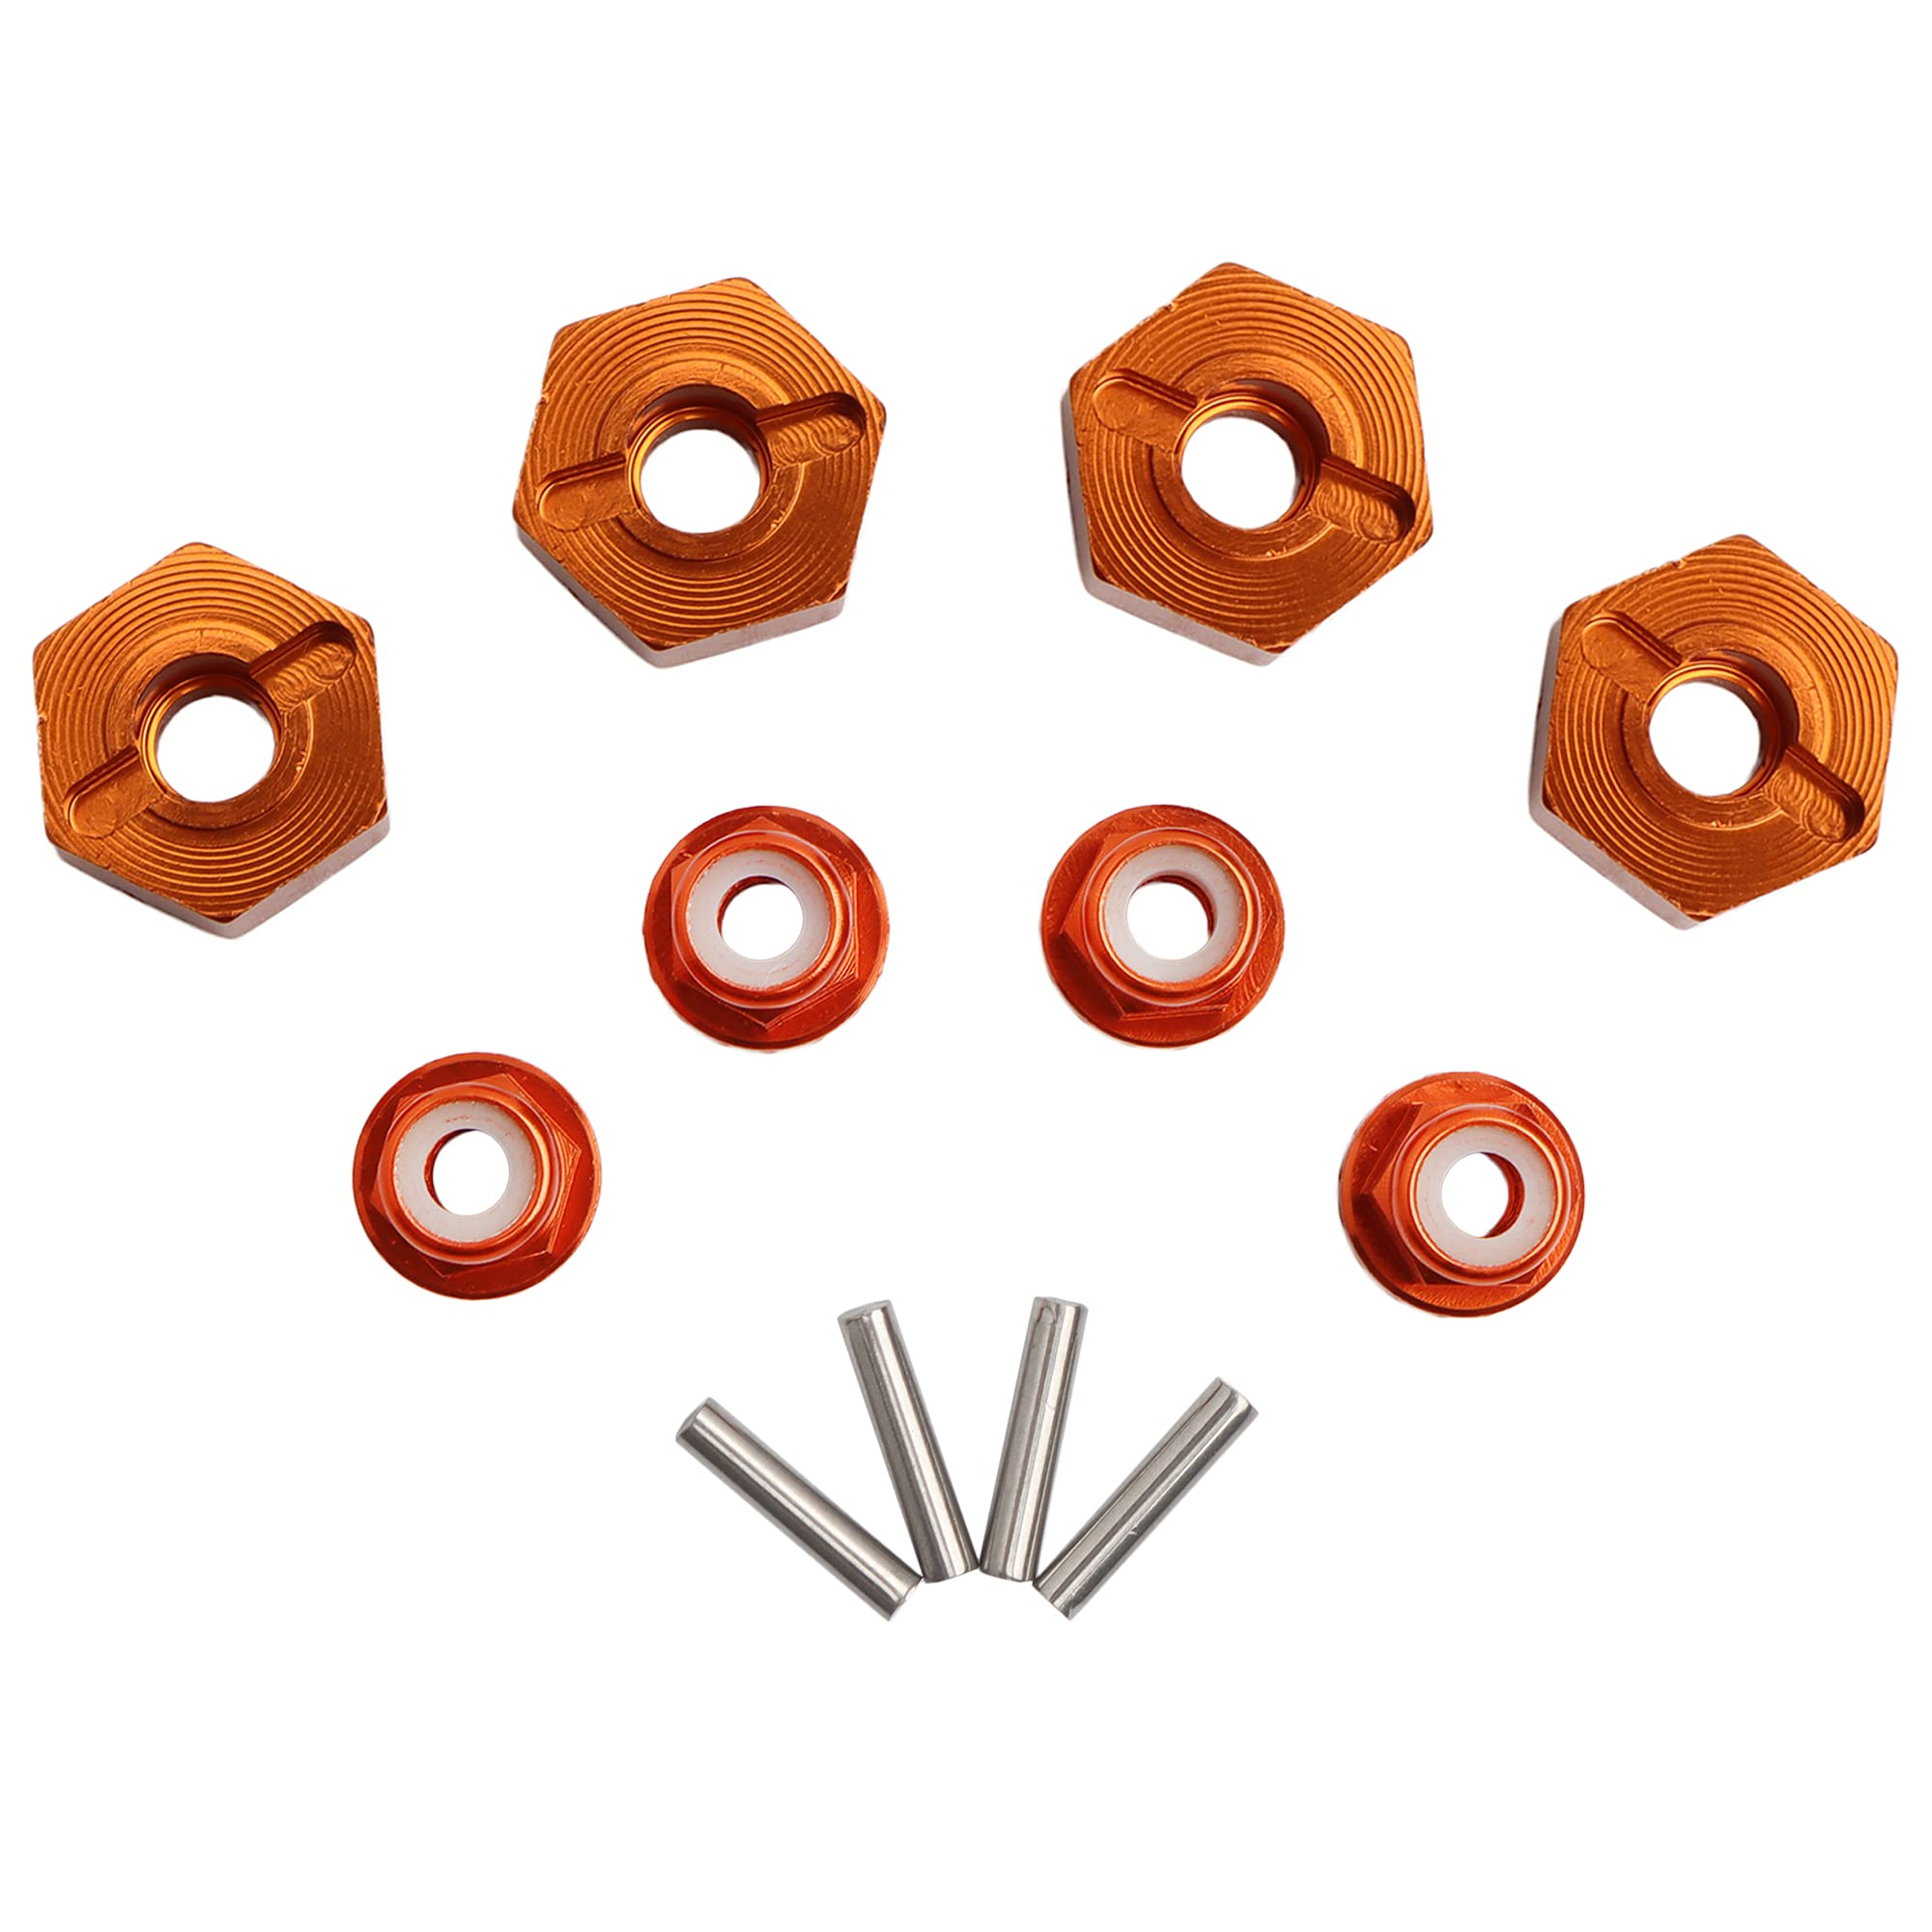 GDOOL 12mm Wheel Hex Hubs Drive Adapter 5mm Thick & Flange o